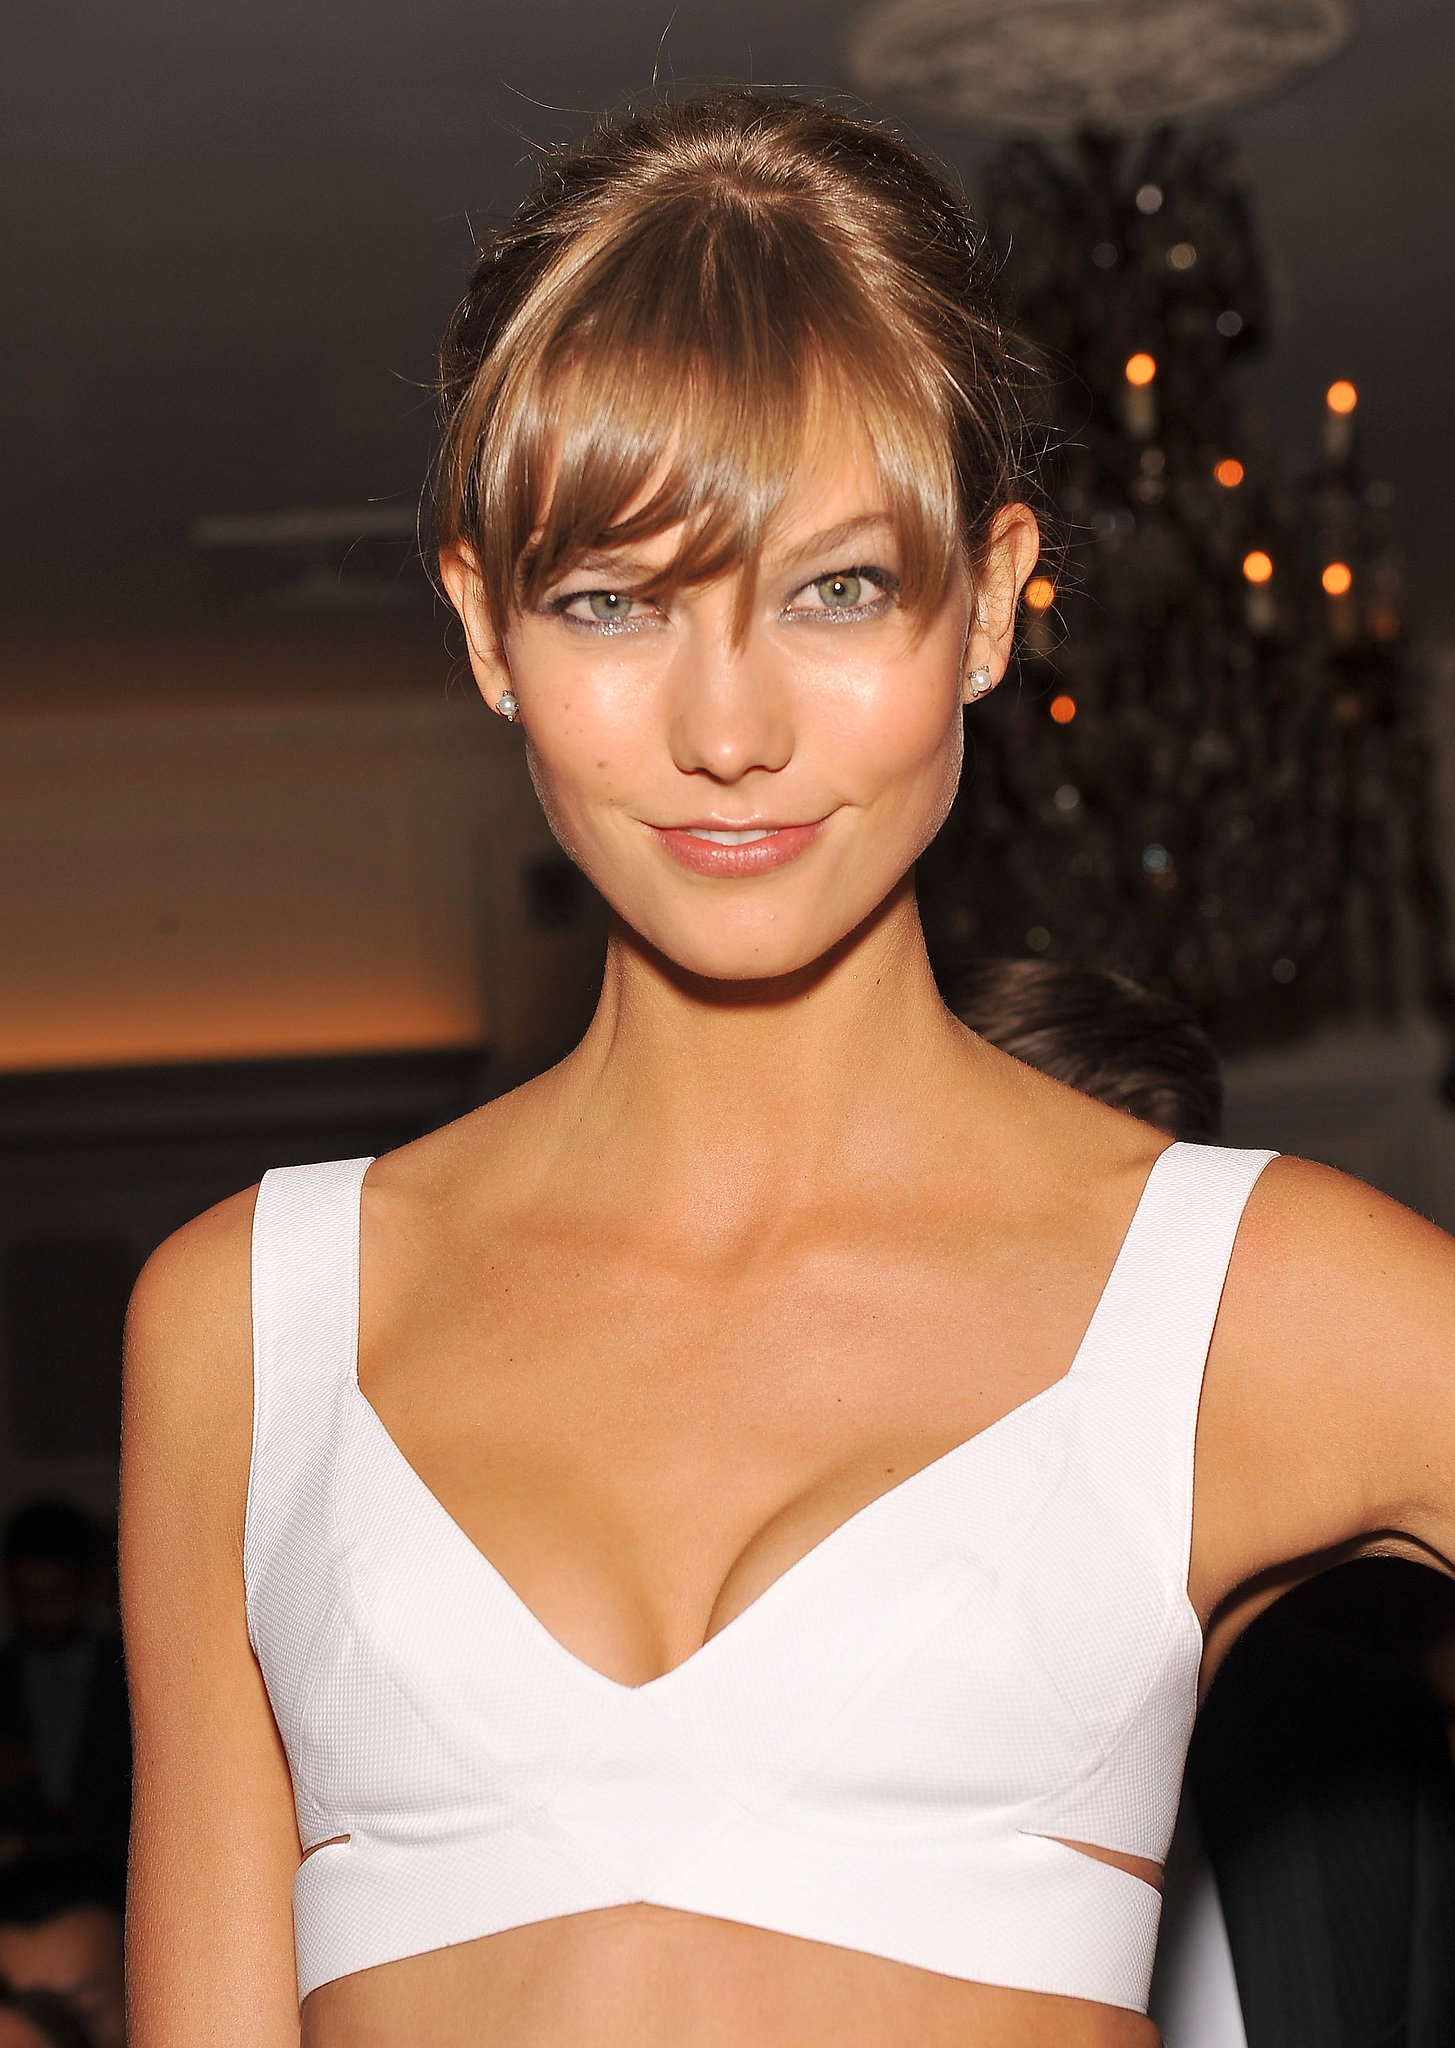 Karlie Kloss at Daily Front Row's Fashion Media Awards.